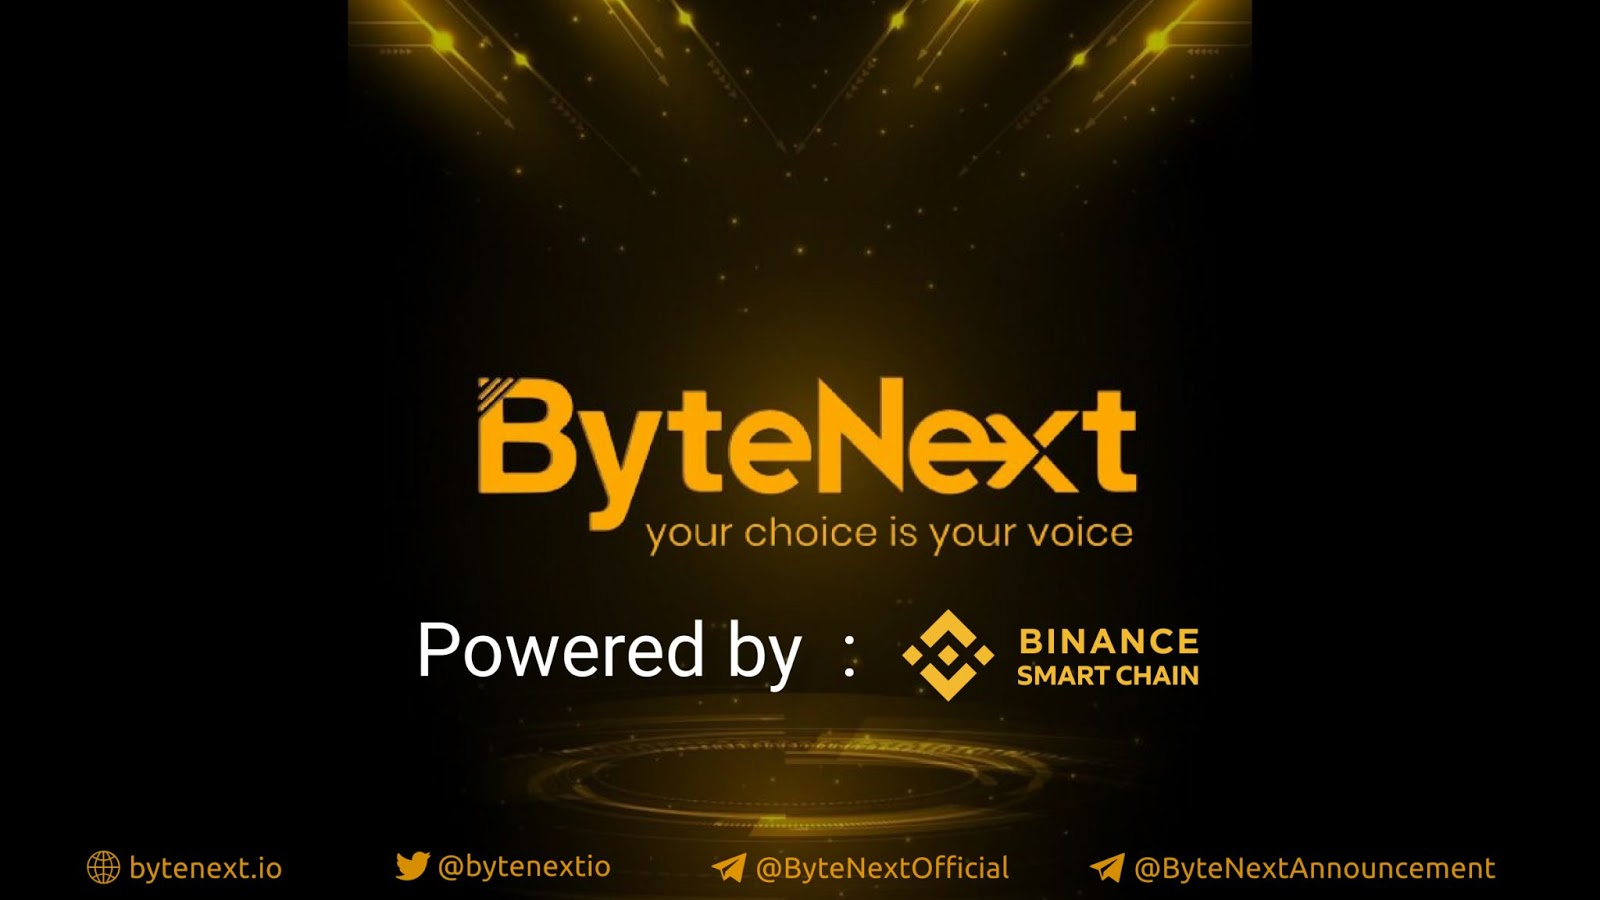 Blockchain solution provider ByteNext launches AvatarArt, an NFT Marketplace for the creator community